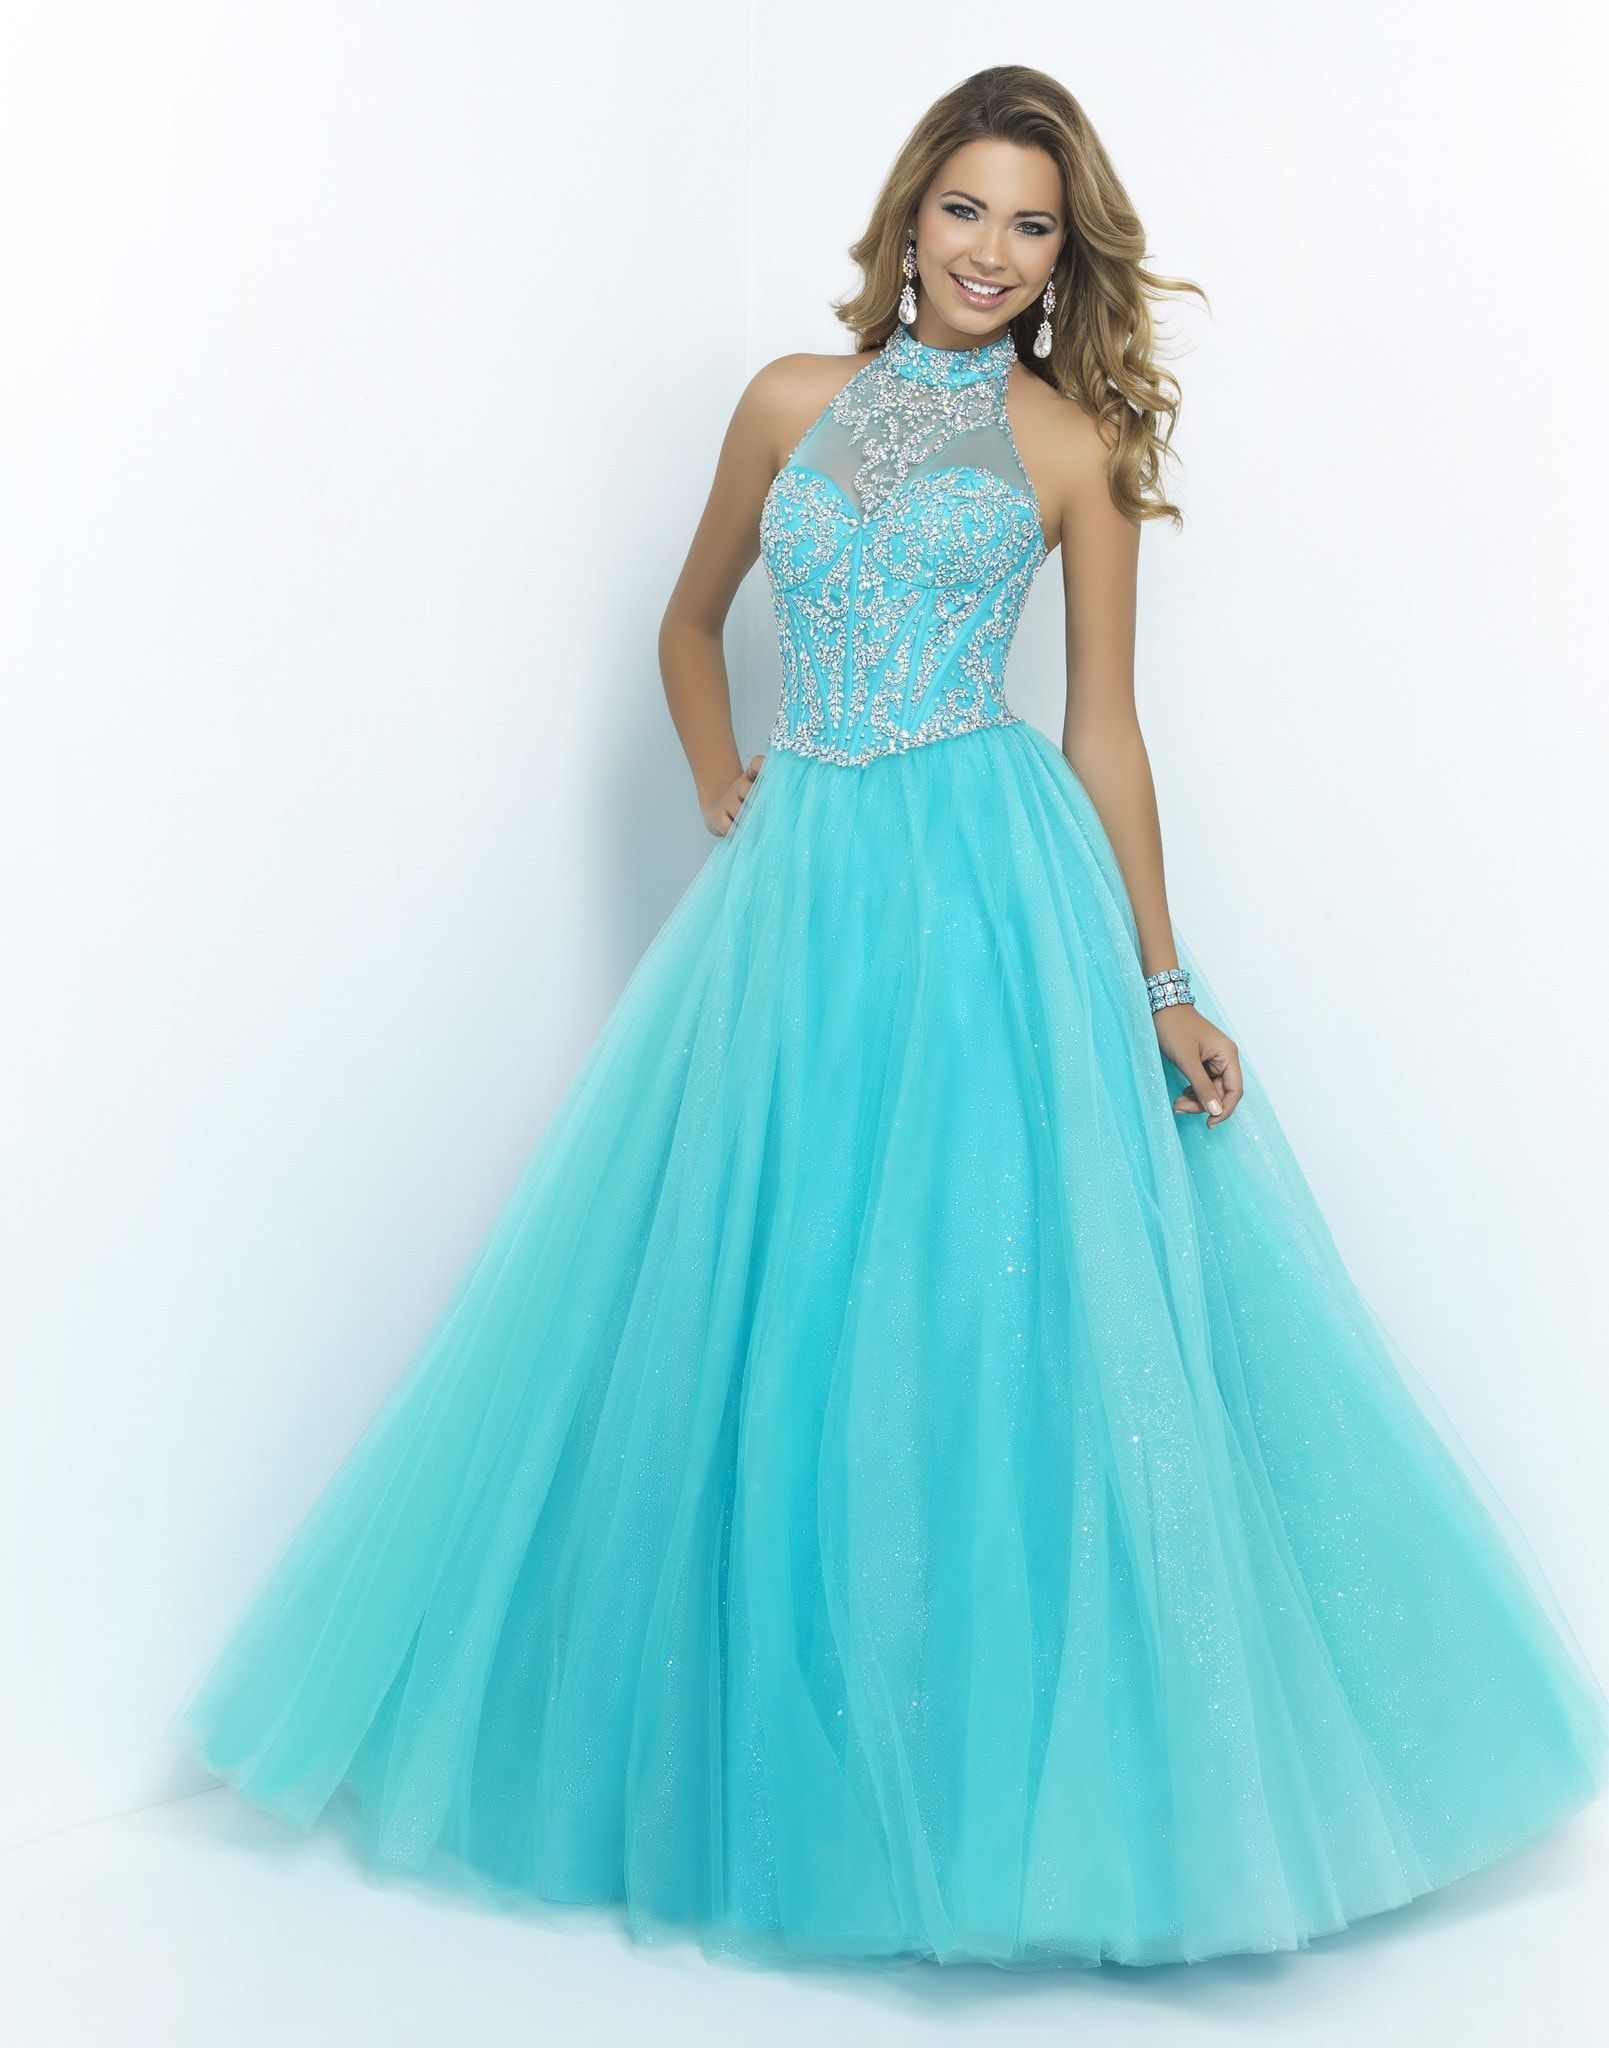 BLUSH PINK 5401 TURQUOISE BALL GOWN | prom dresses | Pinterest ...